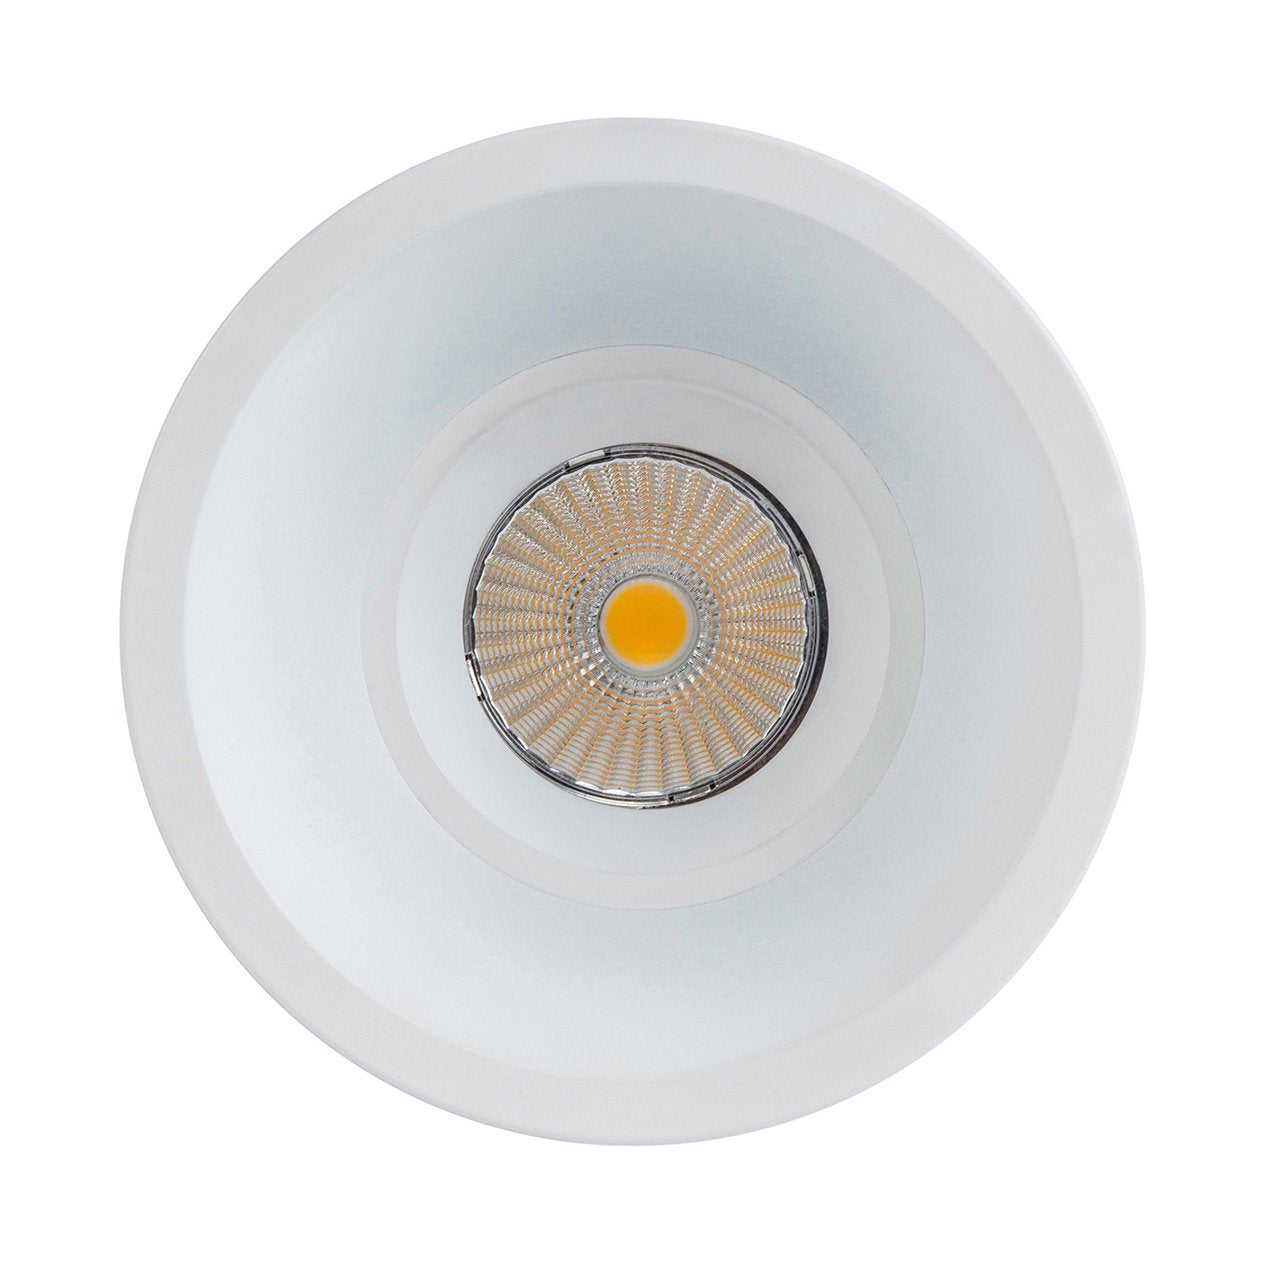 Rime Fixed Deep Tri-Colour LED Downlight - Large